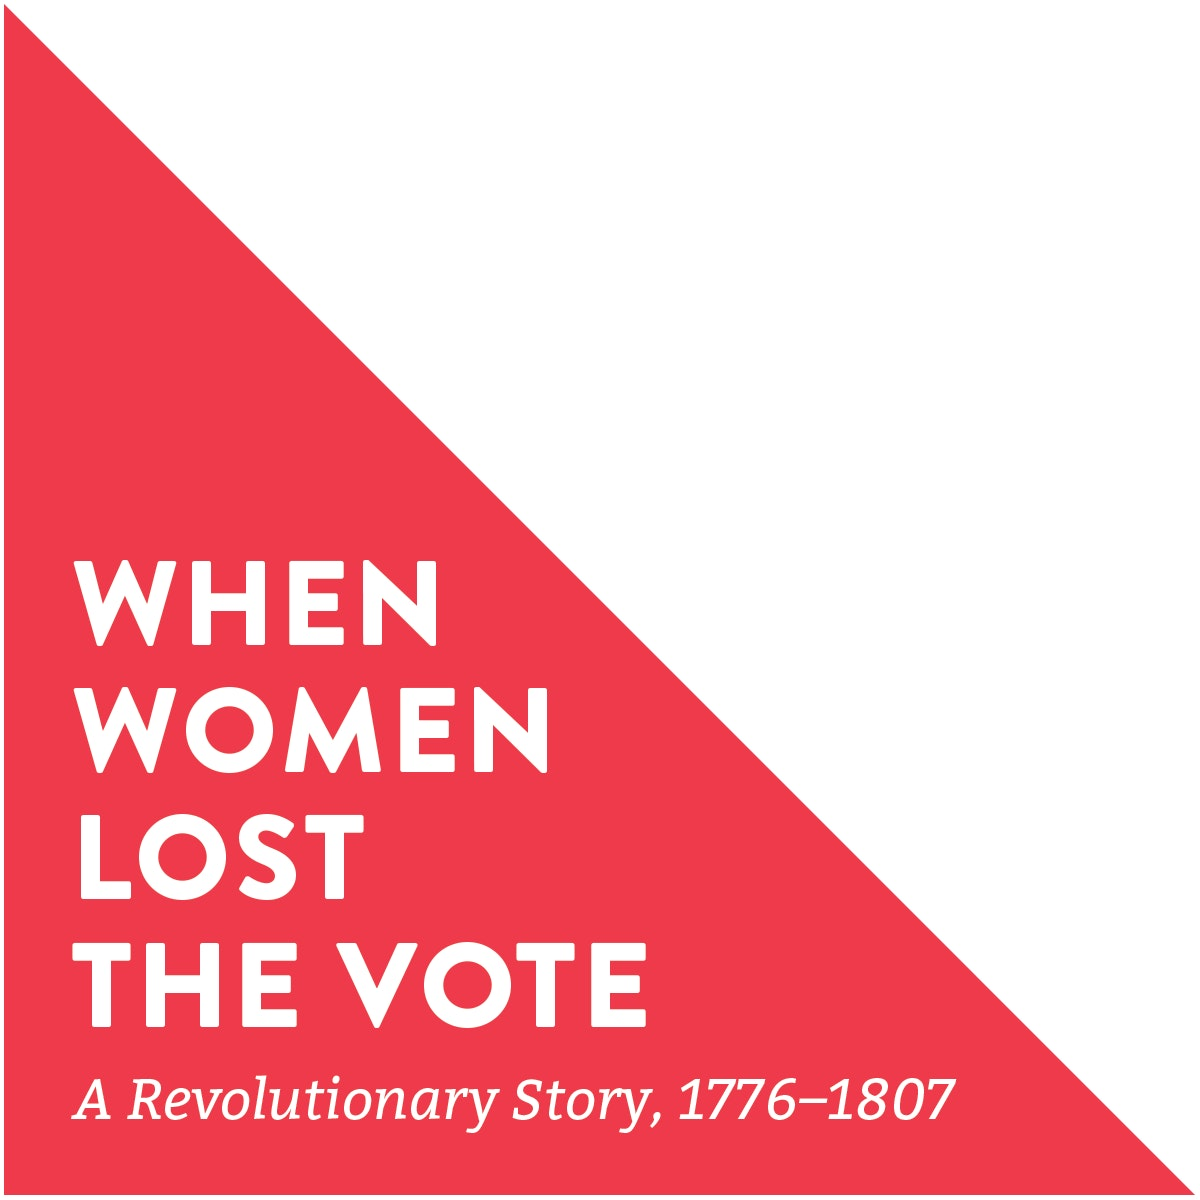 When Women Lost the Vote: A Revolutionary Story